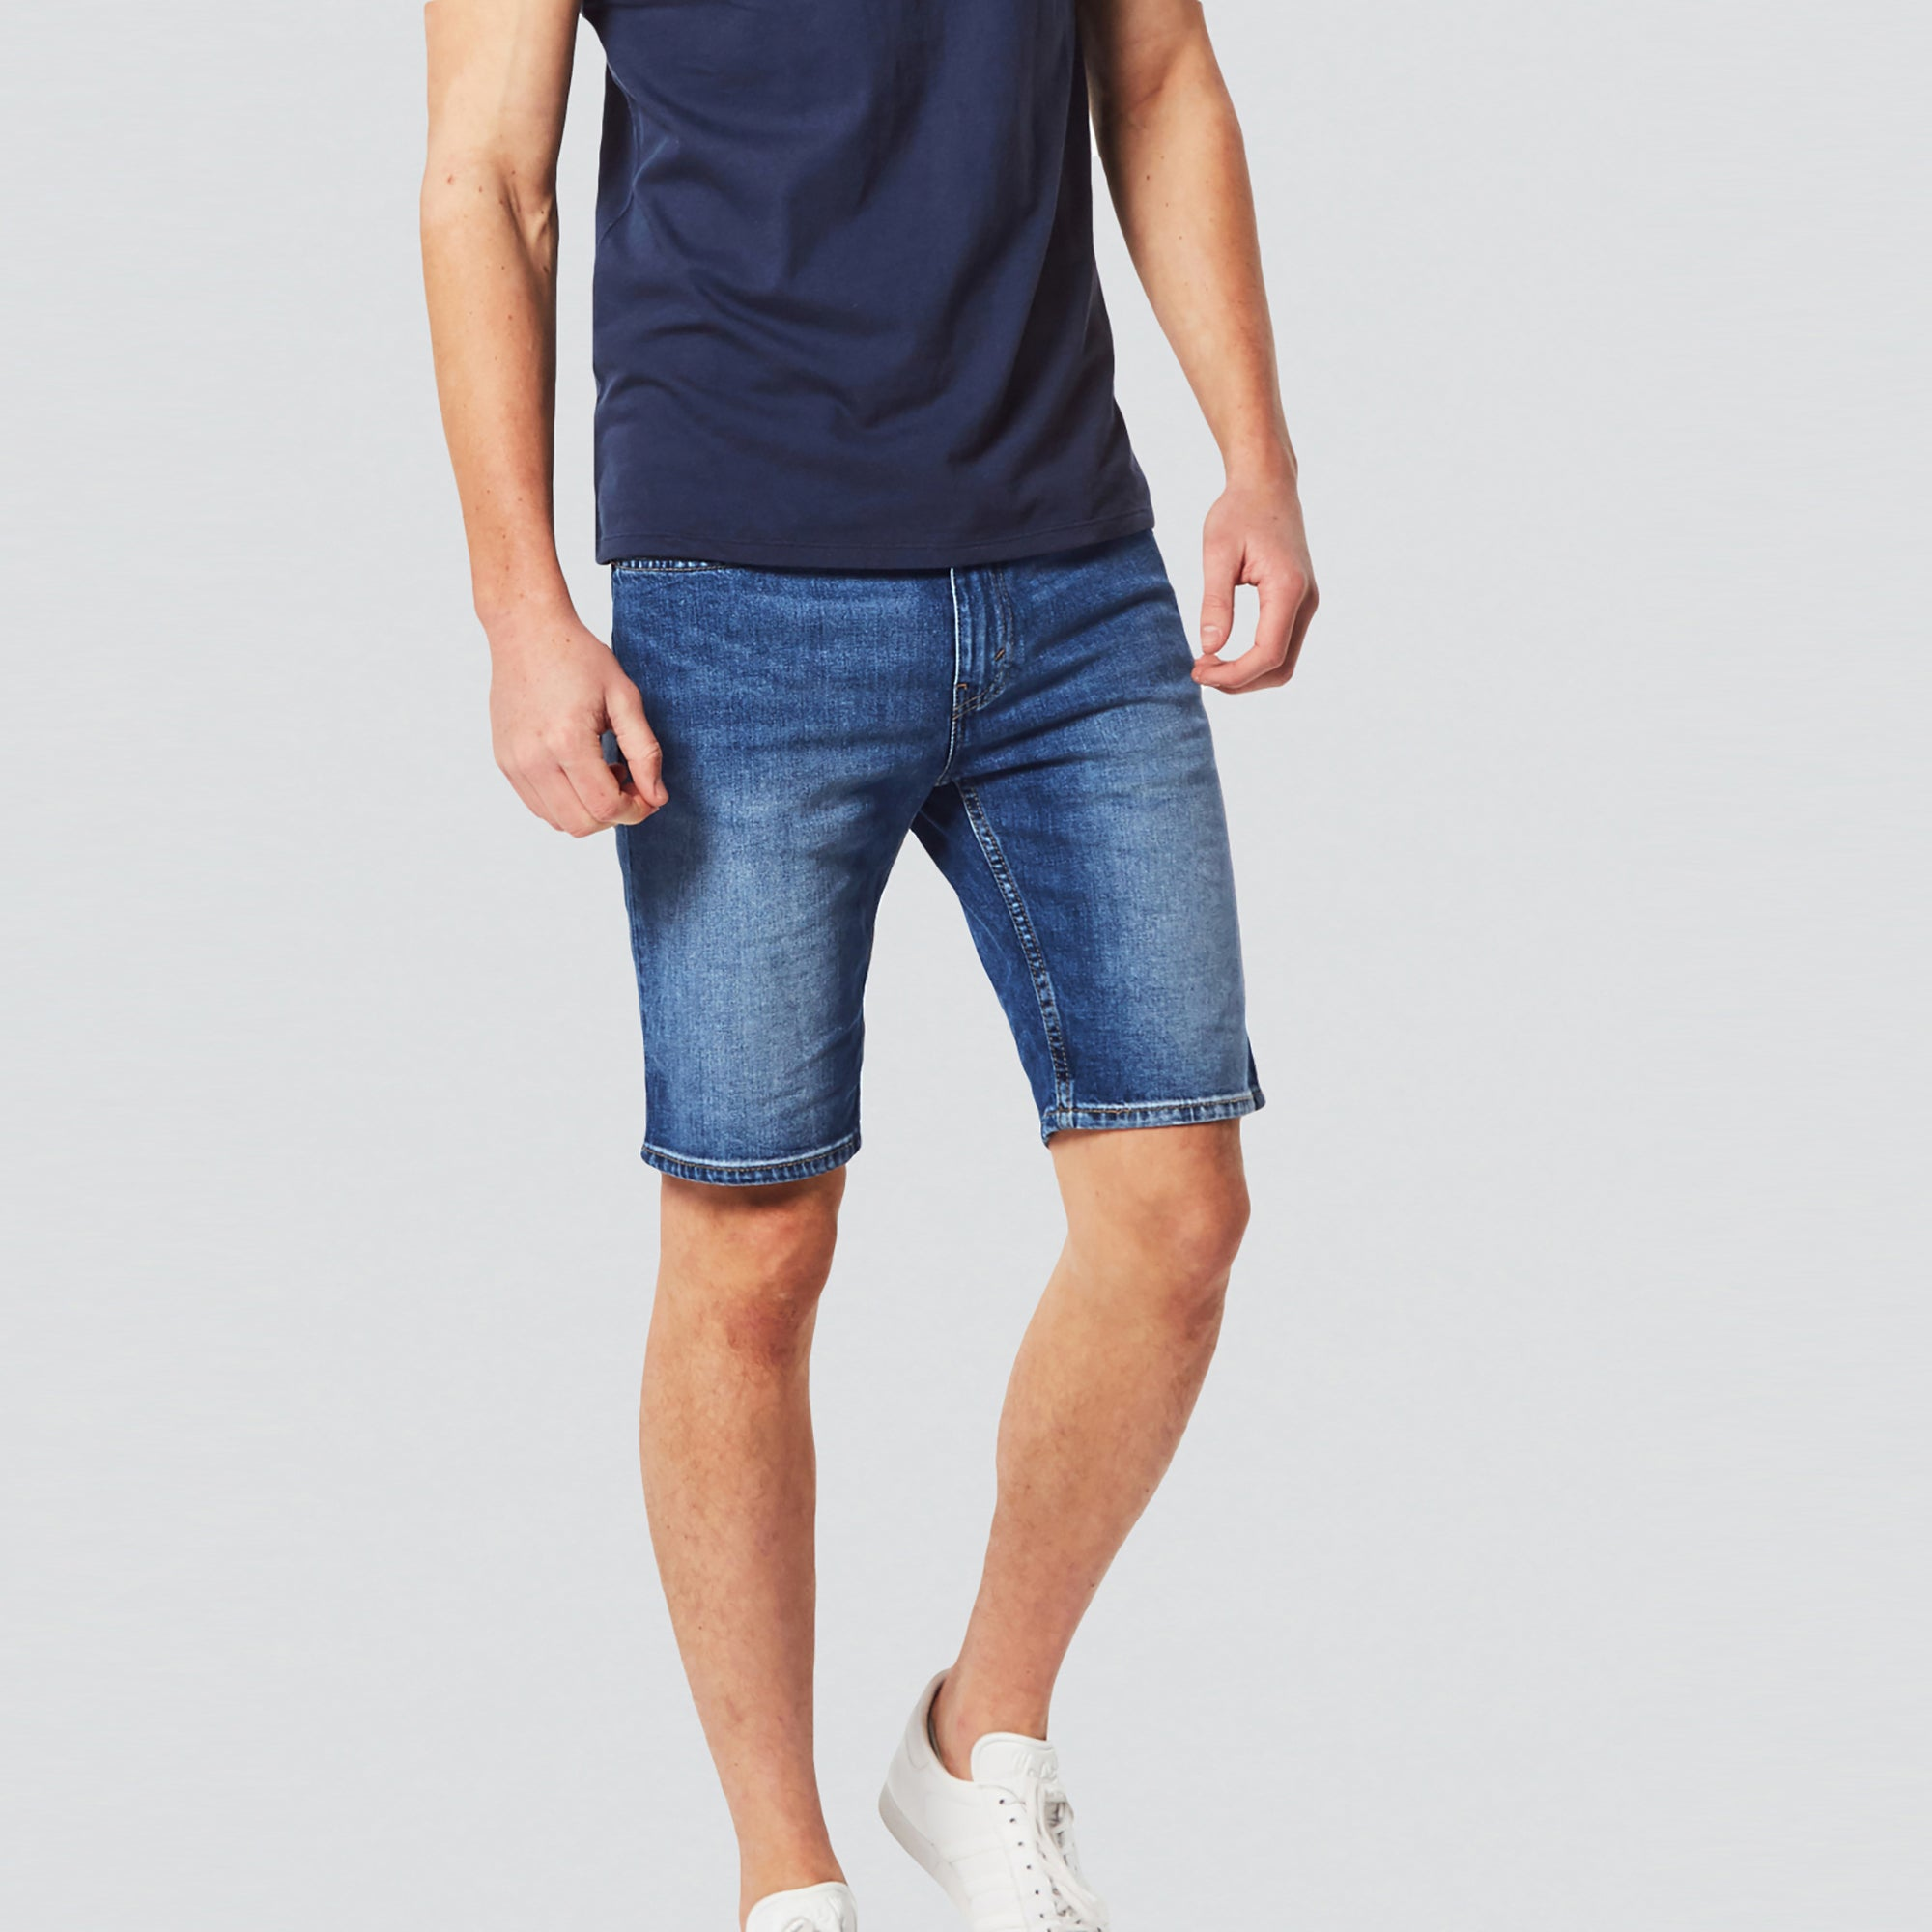 Fly Denim Short For Men- Light Navy Fadeed-SP059